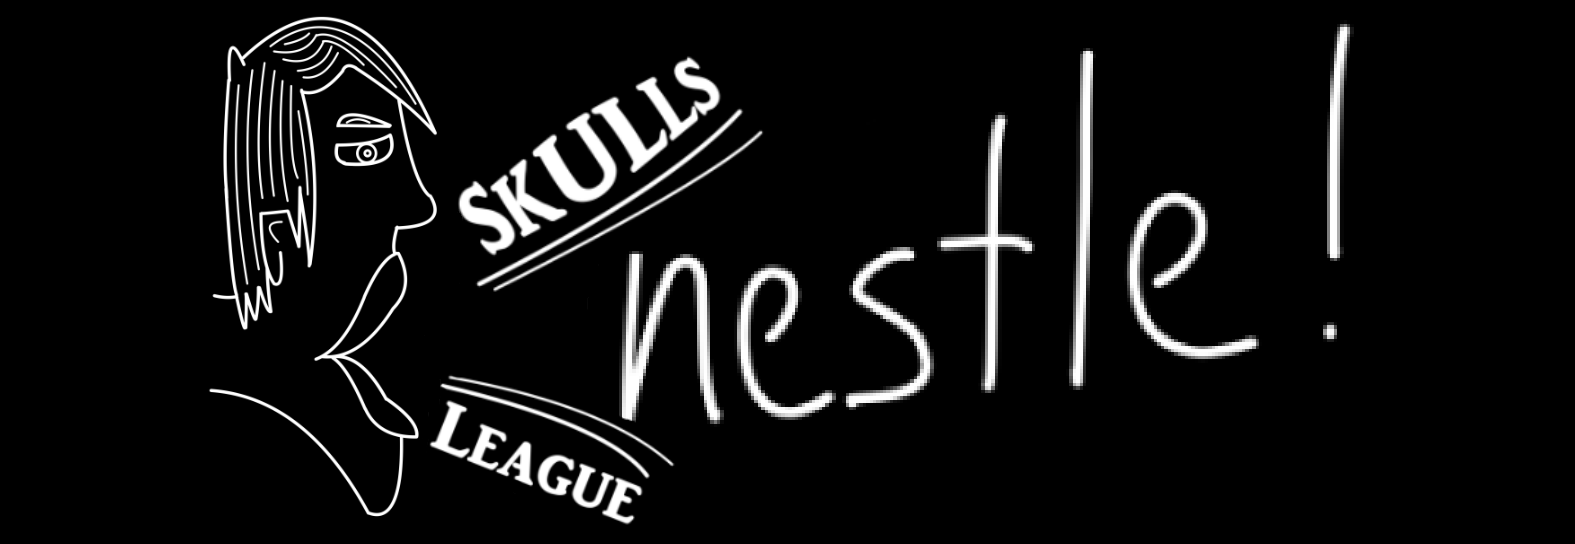 "Skulls ""nestle!"" League"